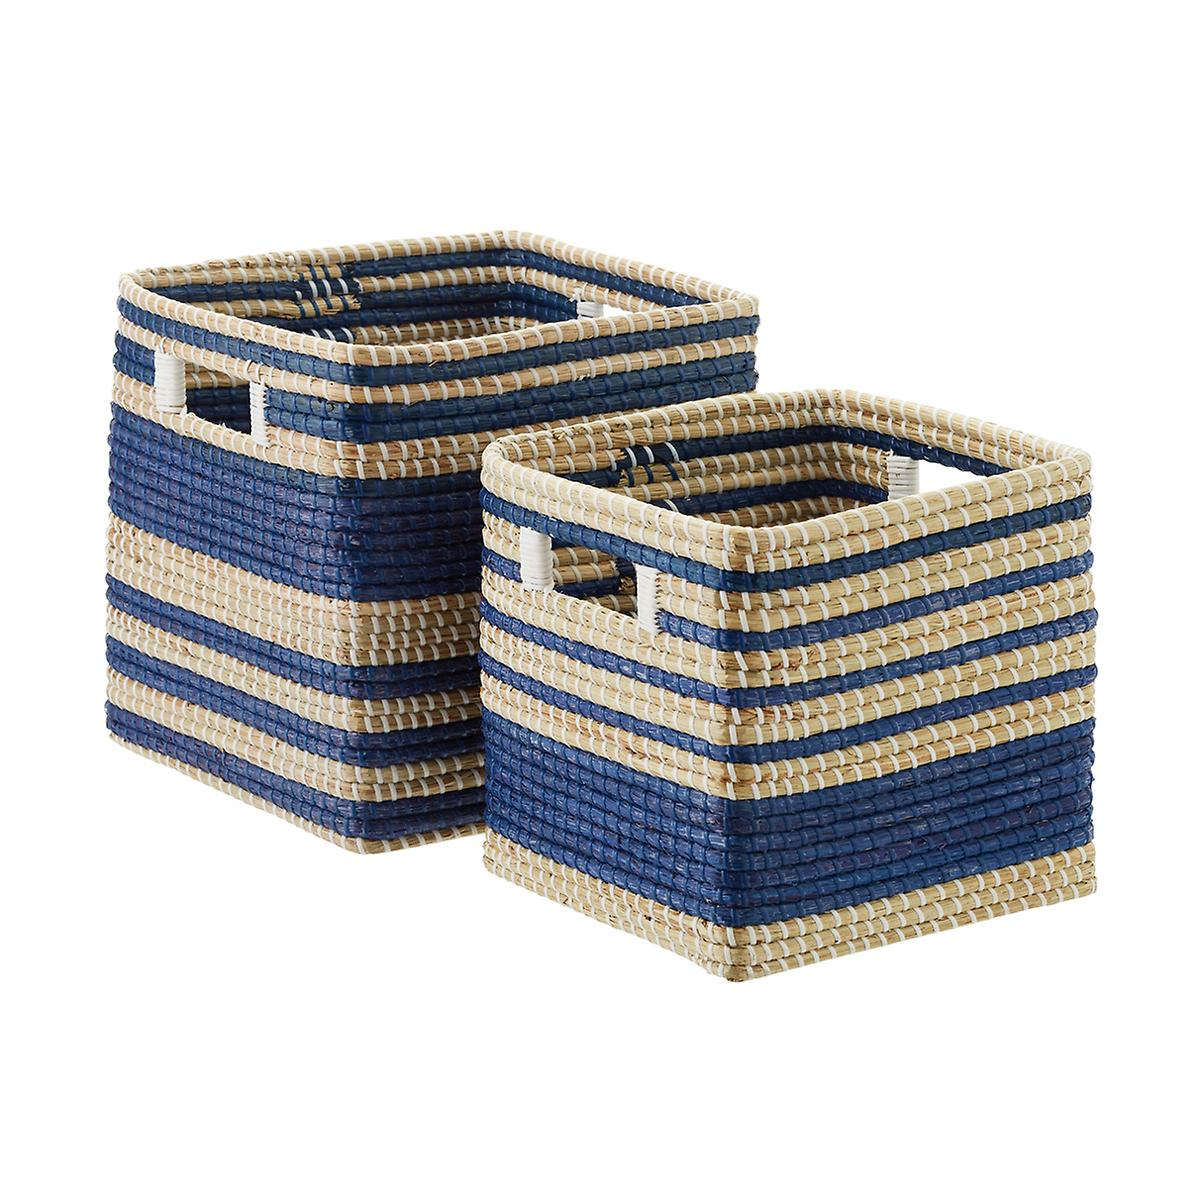 Square Seagrass Bins with Handles